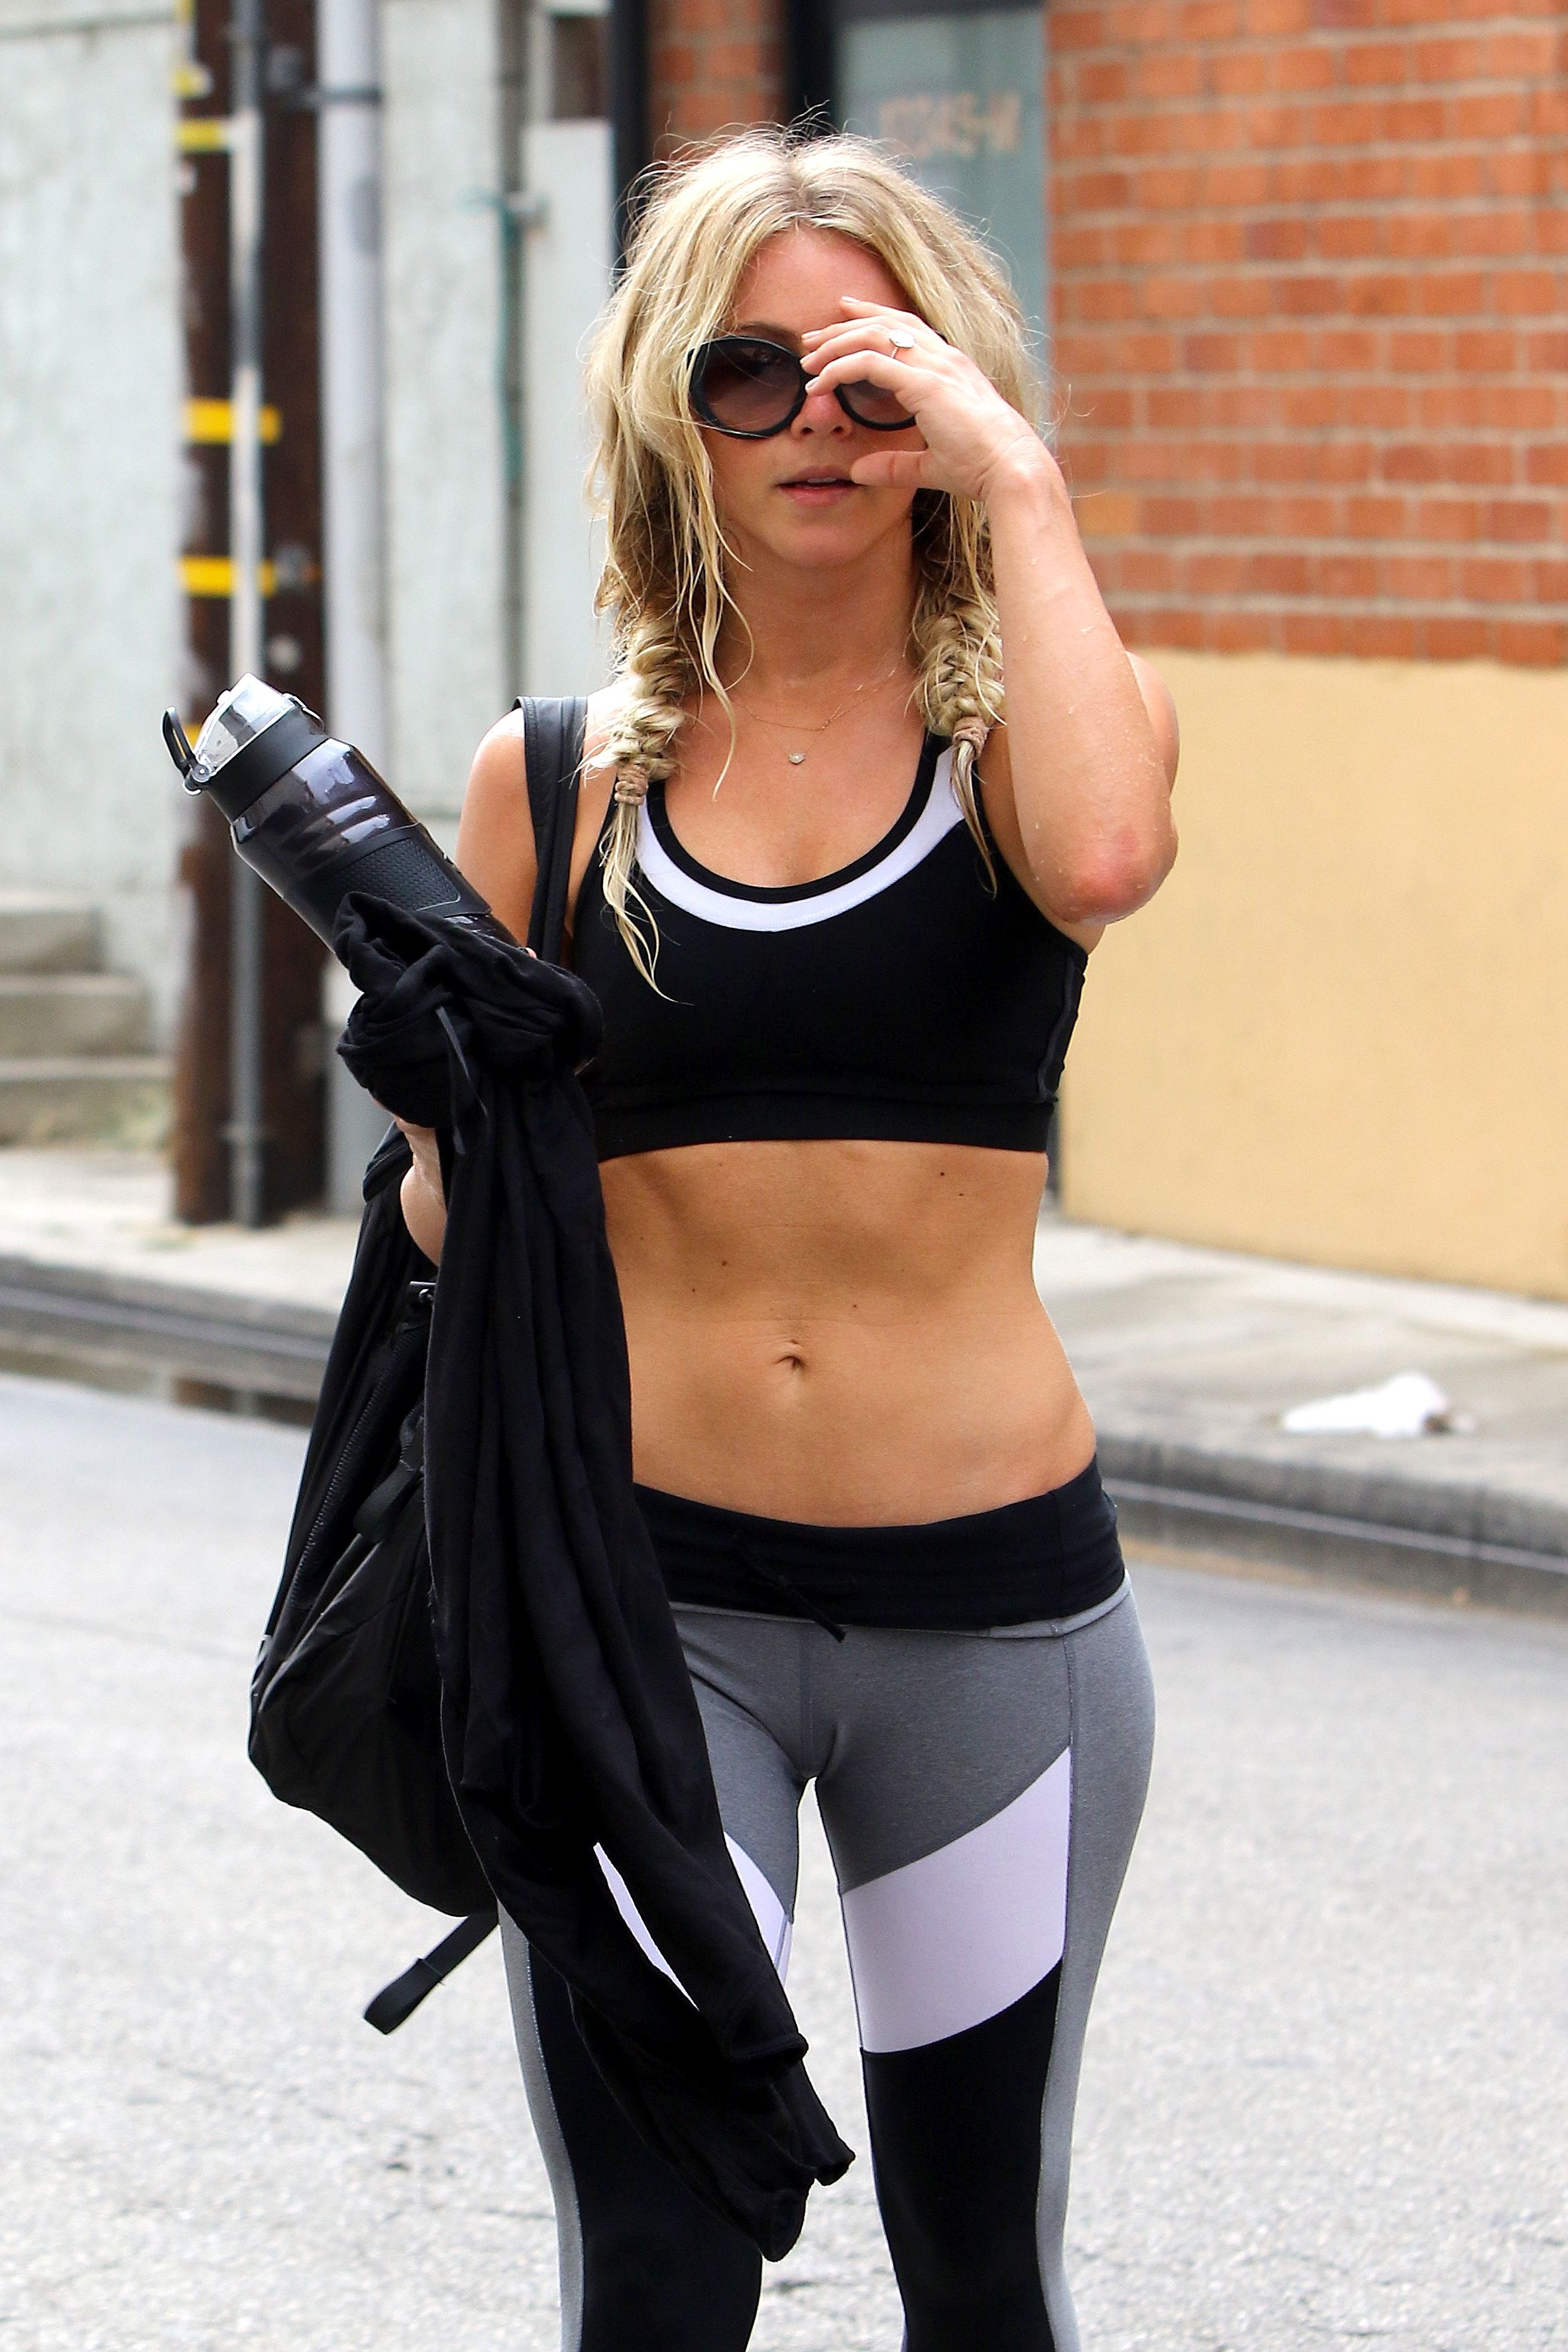 Julianne hough in workout gear studio city nude (13 images)